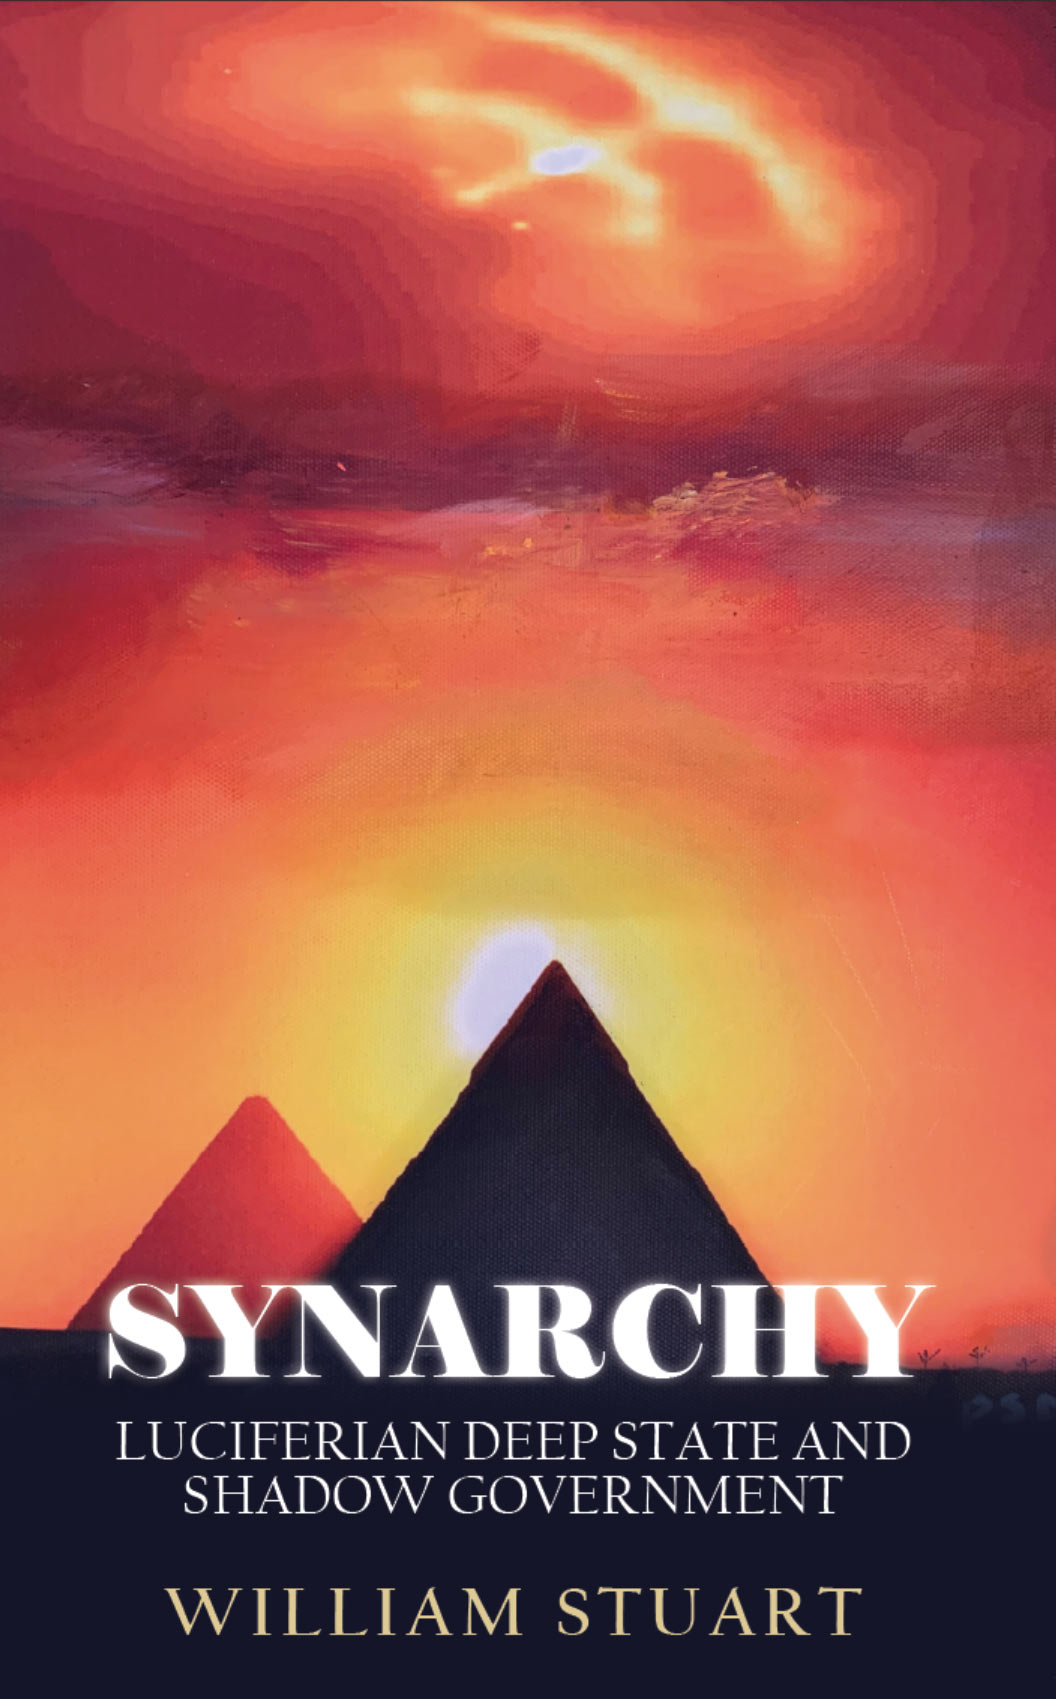 Synarchy front cover image